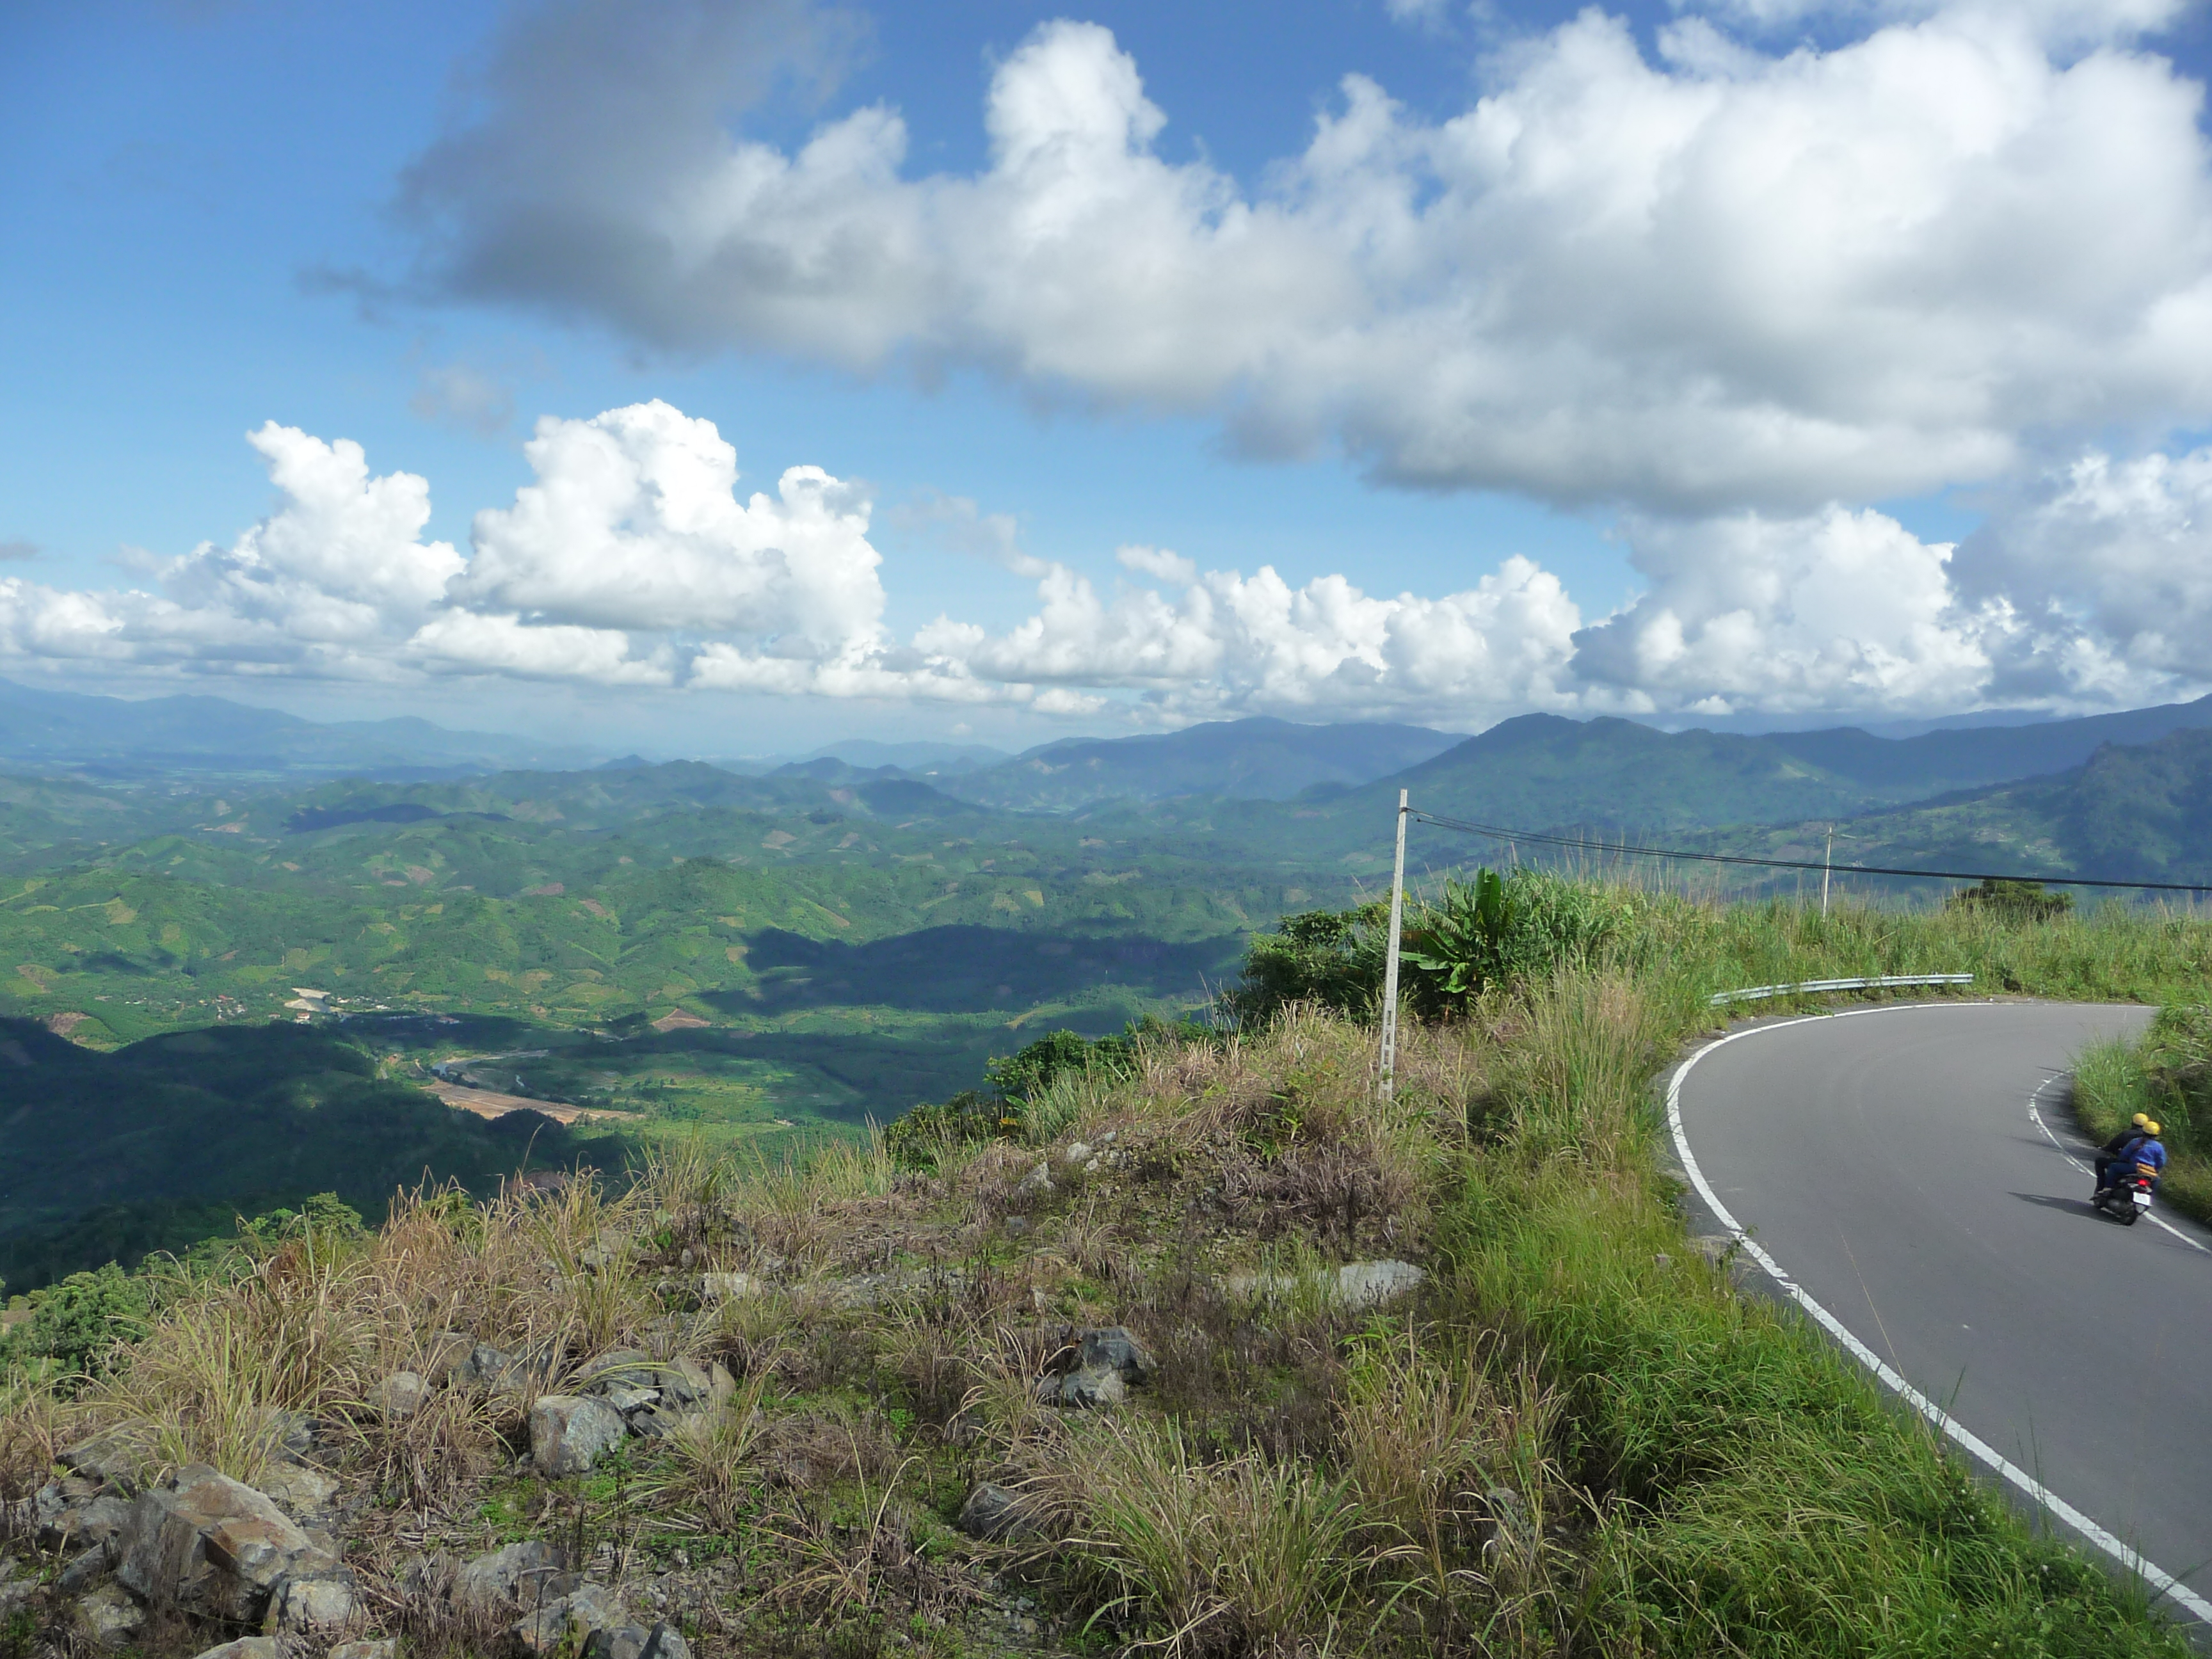 Vietnam By Motorcycle – Nha Trang to Dalat: The Most Scenic Road I've Ever Taken